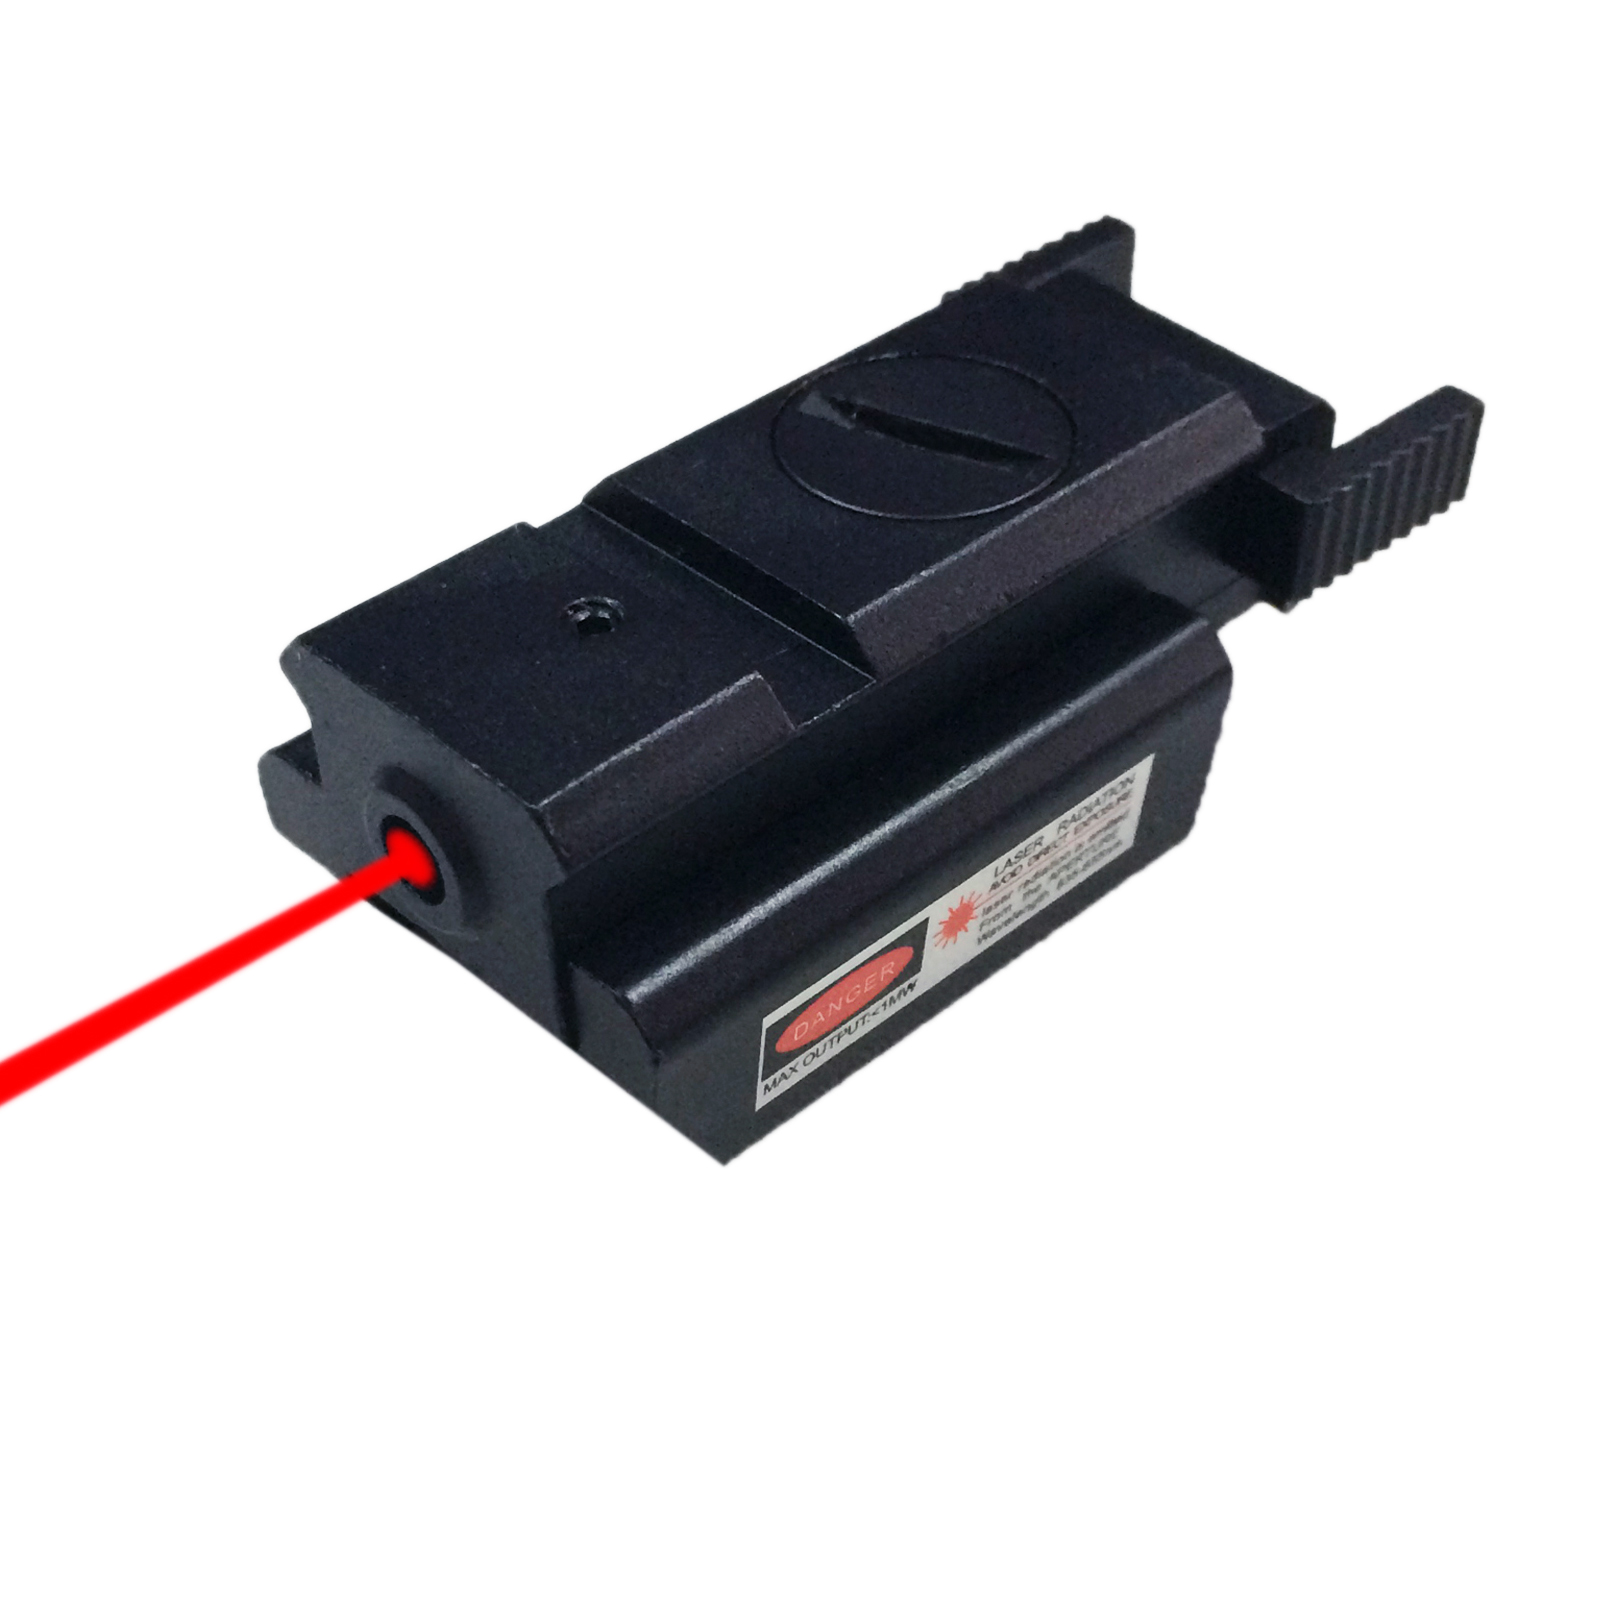 Pinty Red Dot Mini Compact Rail Red Laser Sight Weaver For